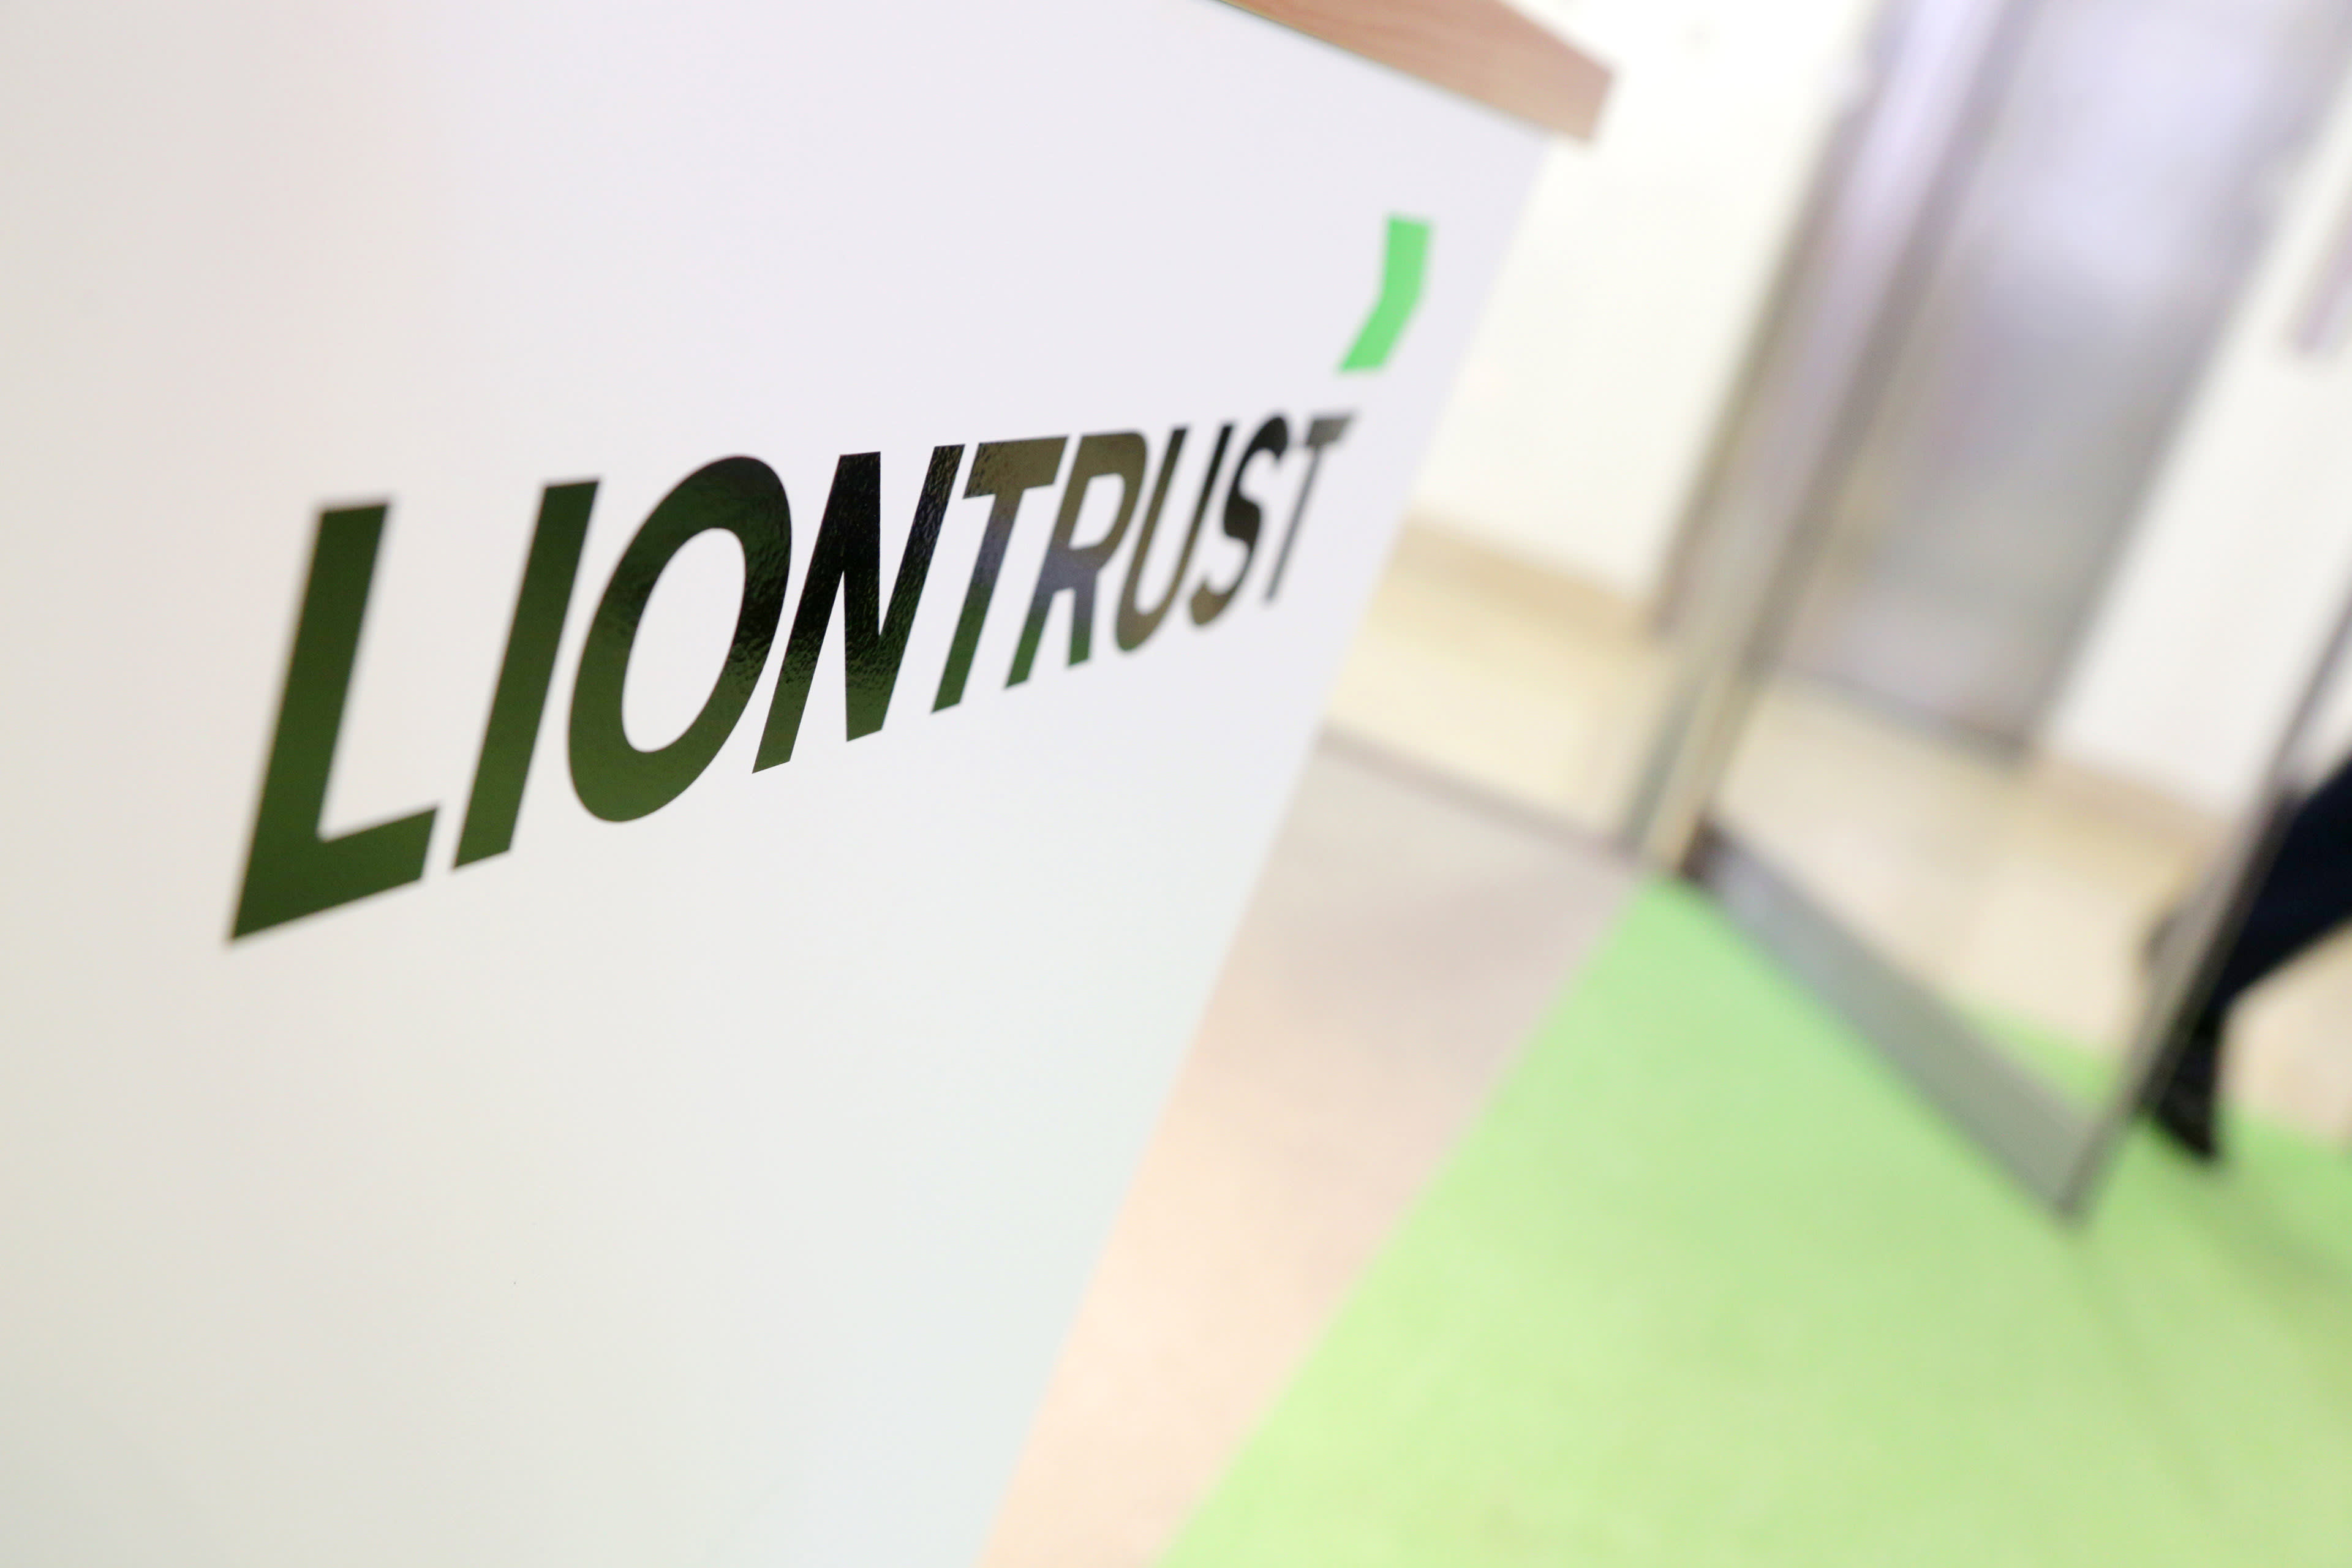 Liontrust merges underperforming funds as manager exits